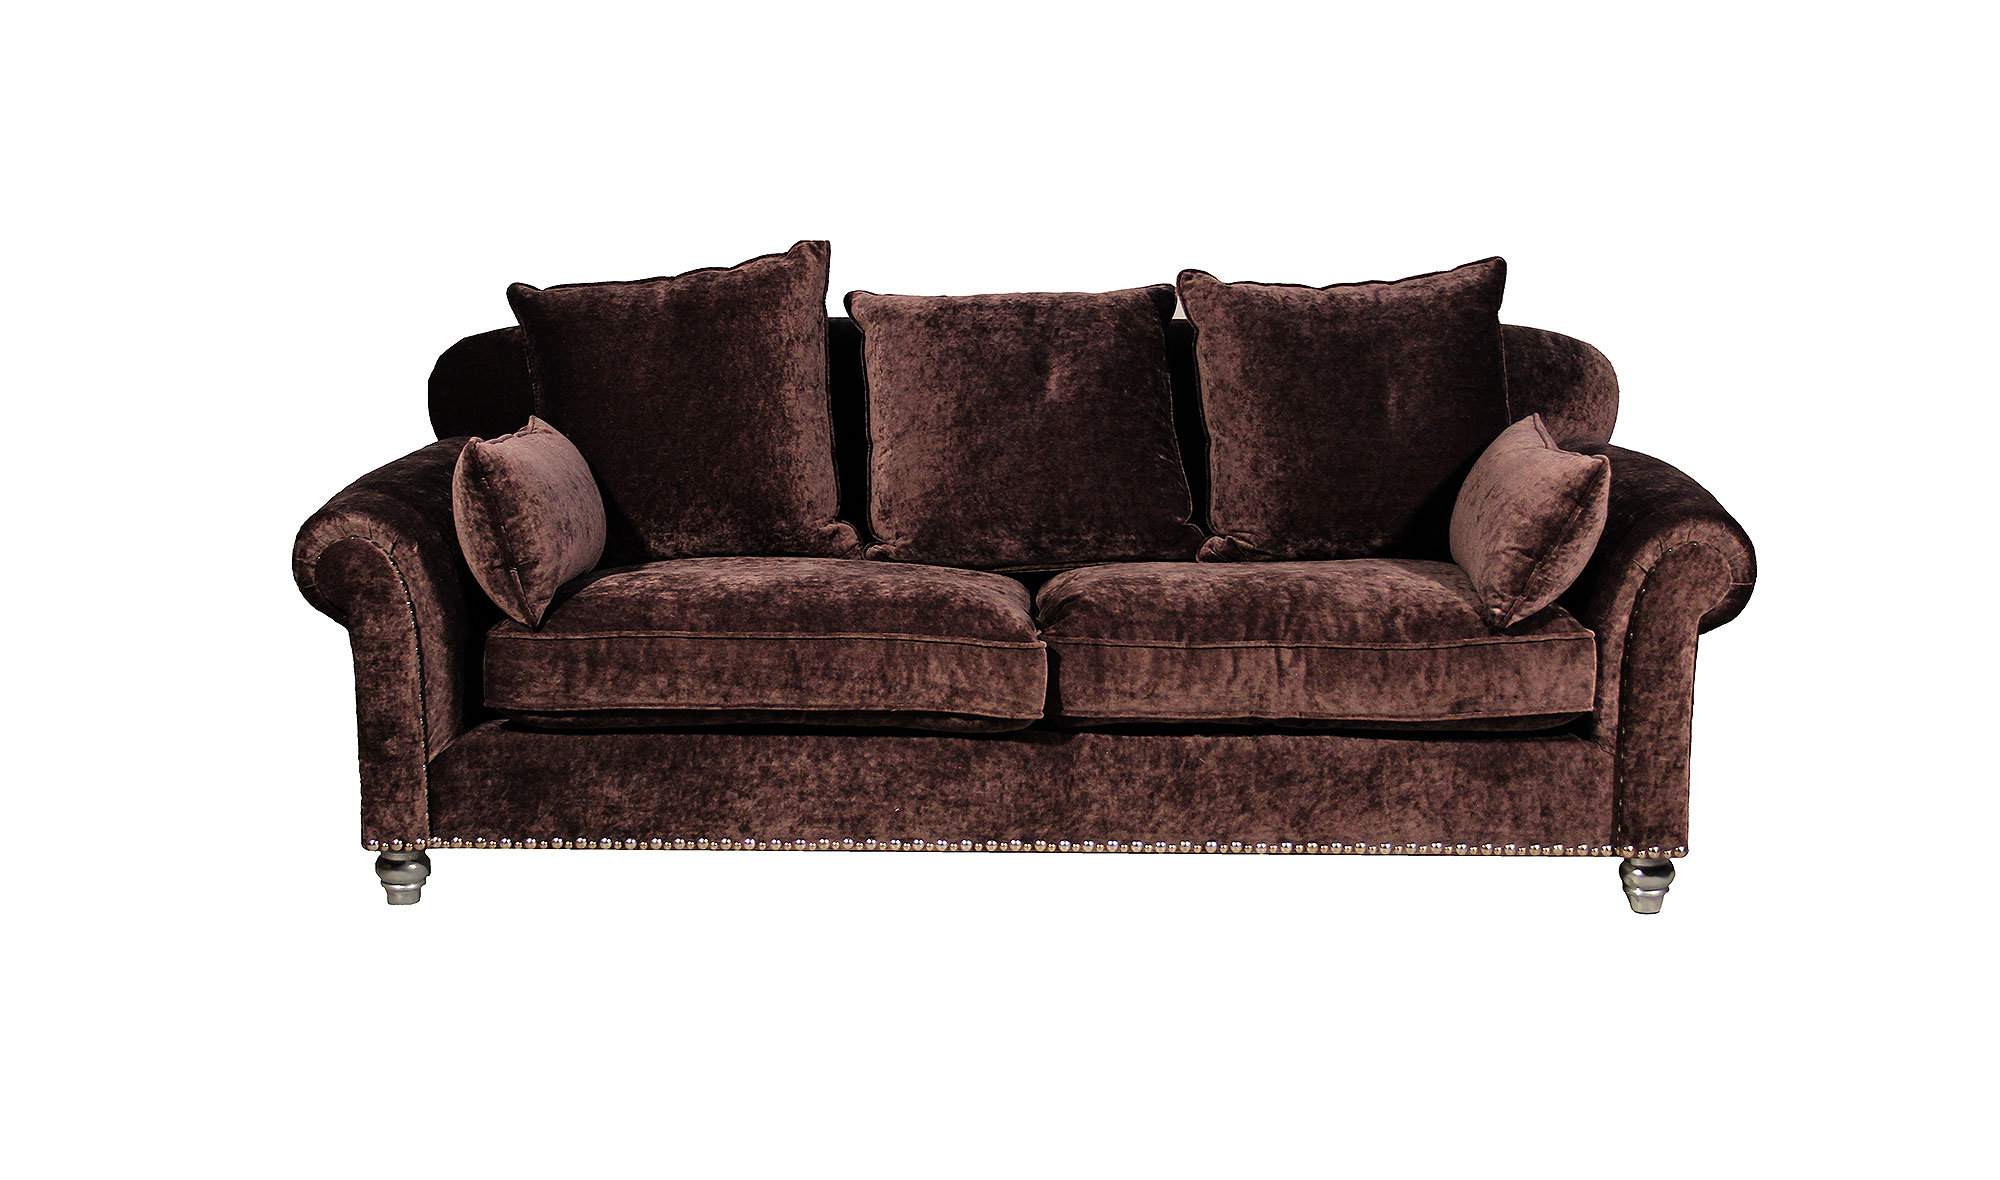 Sof vintage bentley en for Sofas clasicos madrid